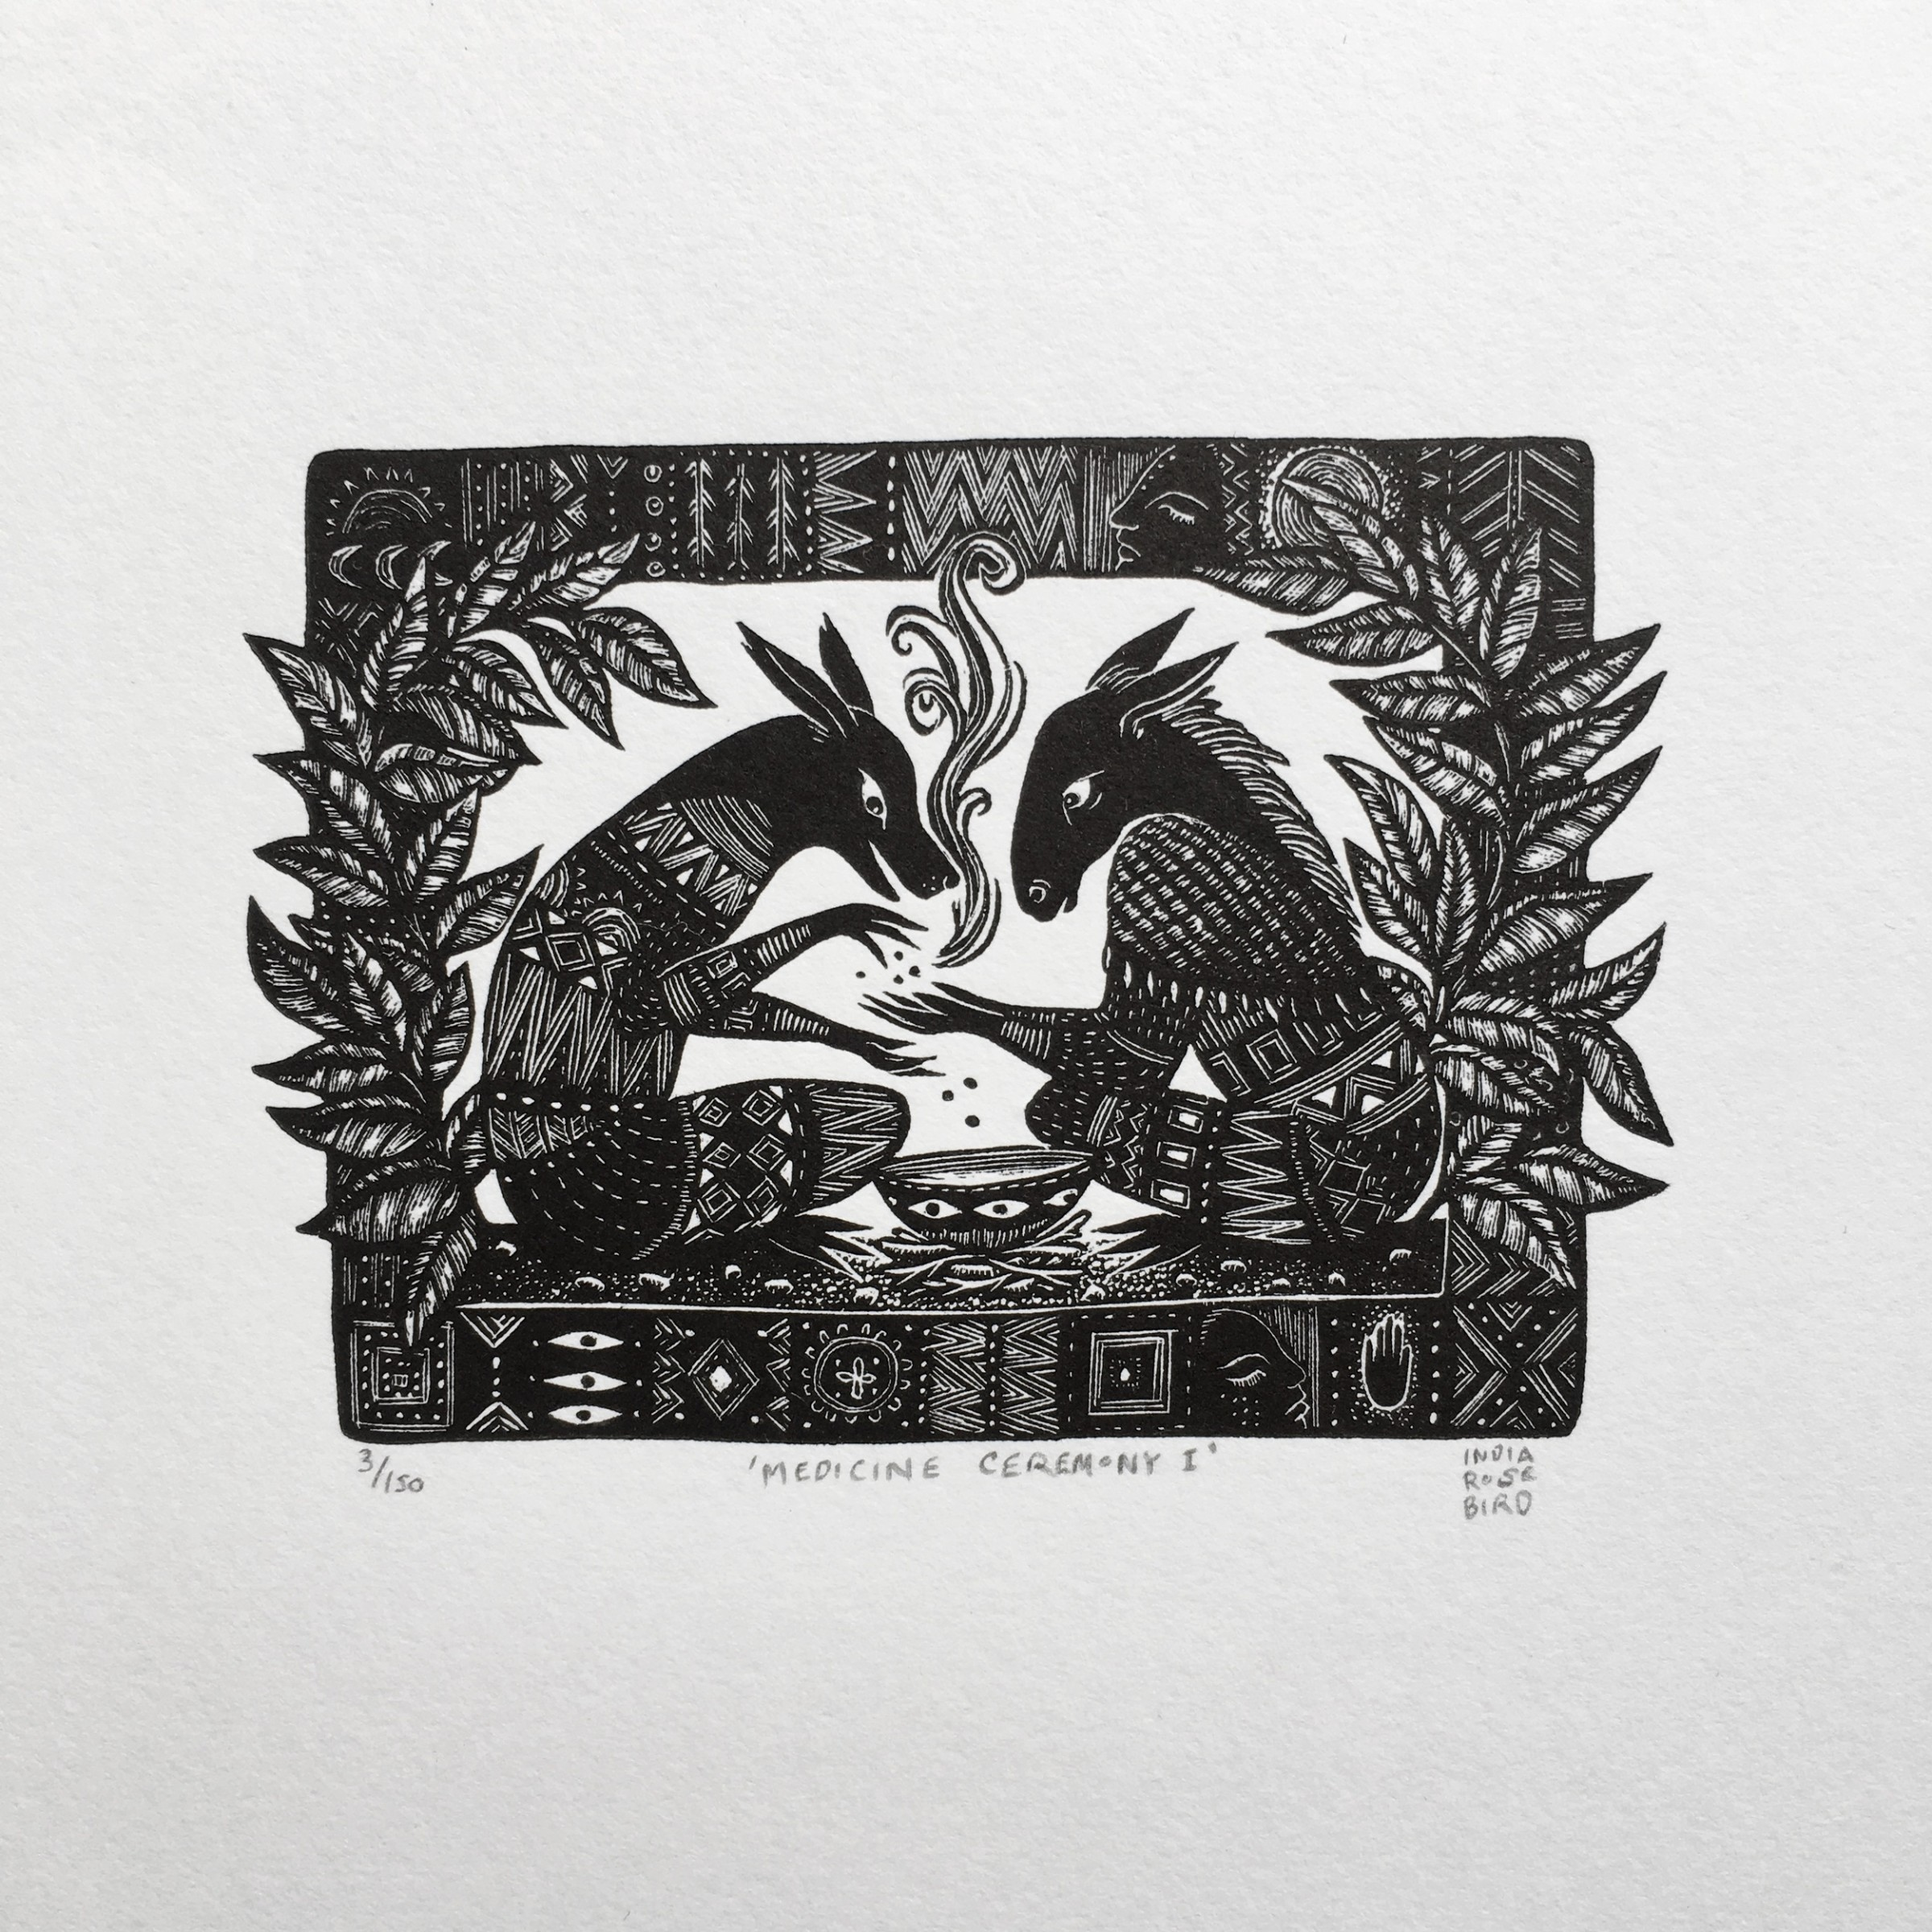 "<span class=""link fancybox-details-link""><a href=""/exhibitions/18/works/image_standalone964/"">View Detail Page</a></span><p>India Rose Bird</p><p>Medicine Ceremony I</p><p>wood engraving</p><p>24 x 21cm</p><p>£75 framed</p><p>£55 unframed</p>"